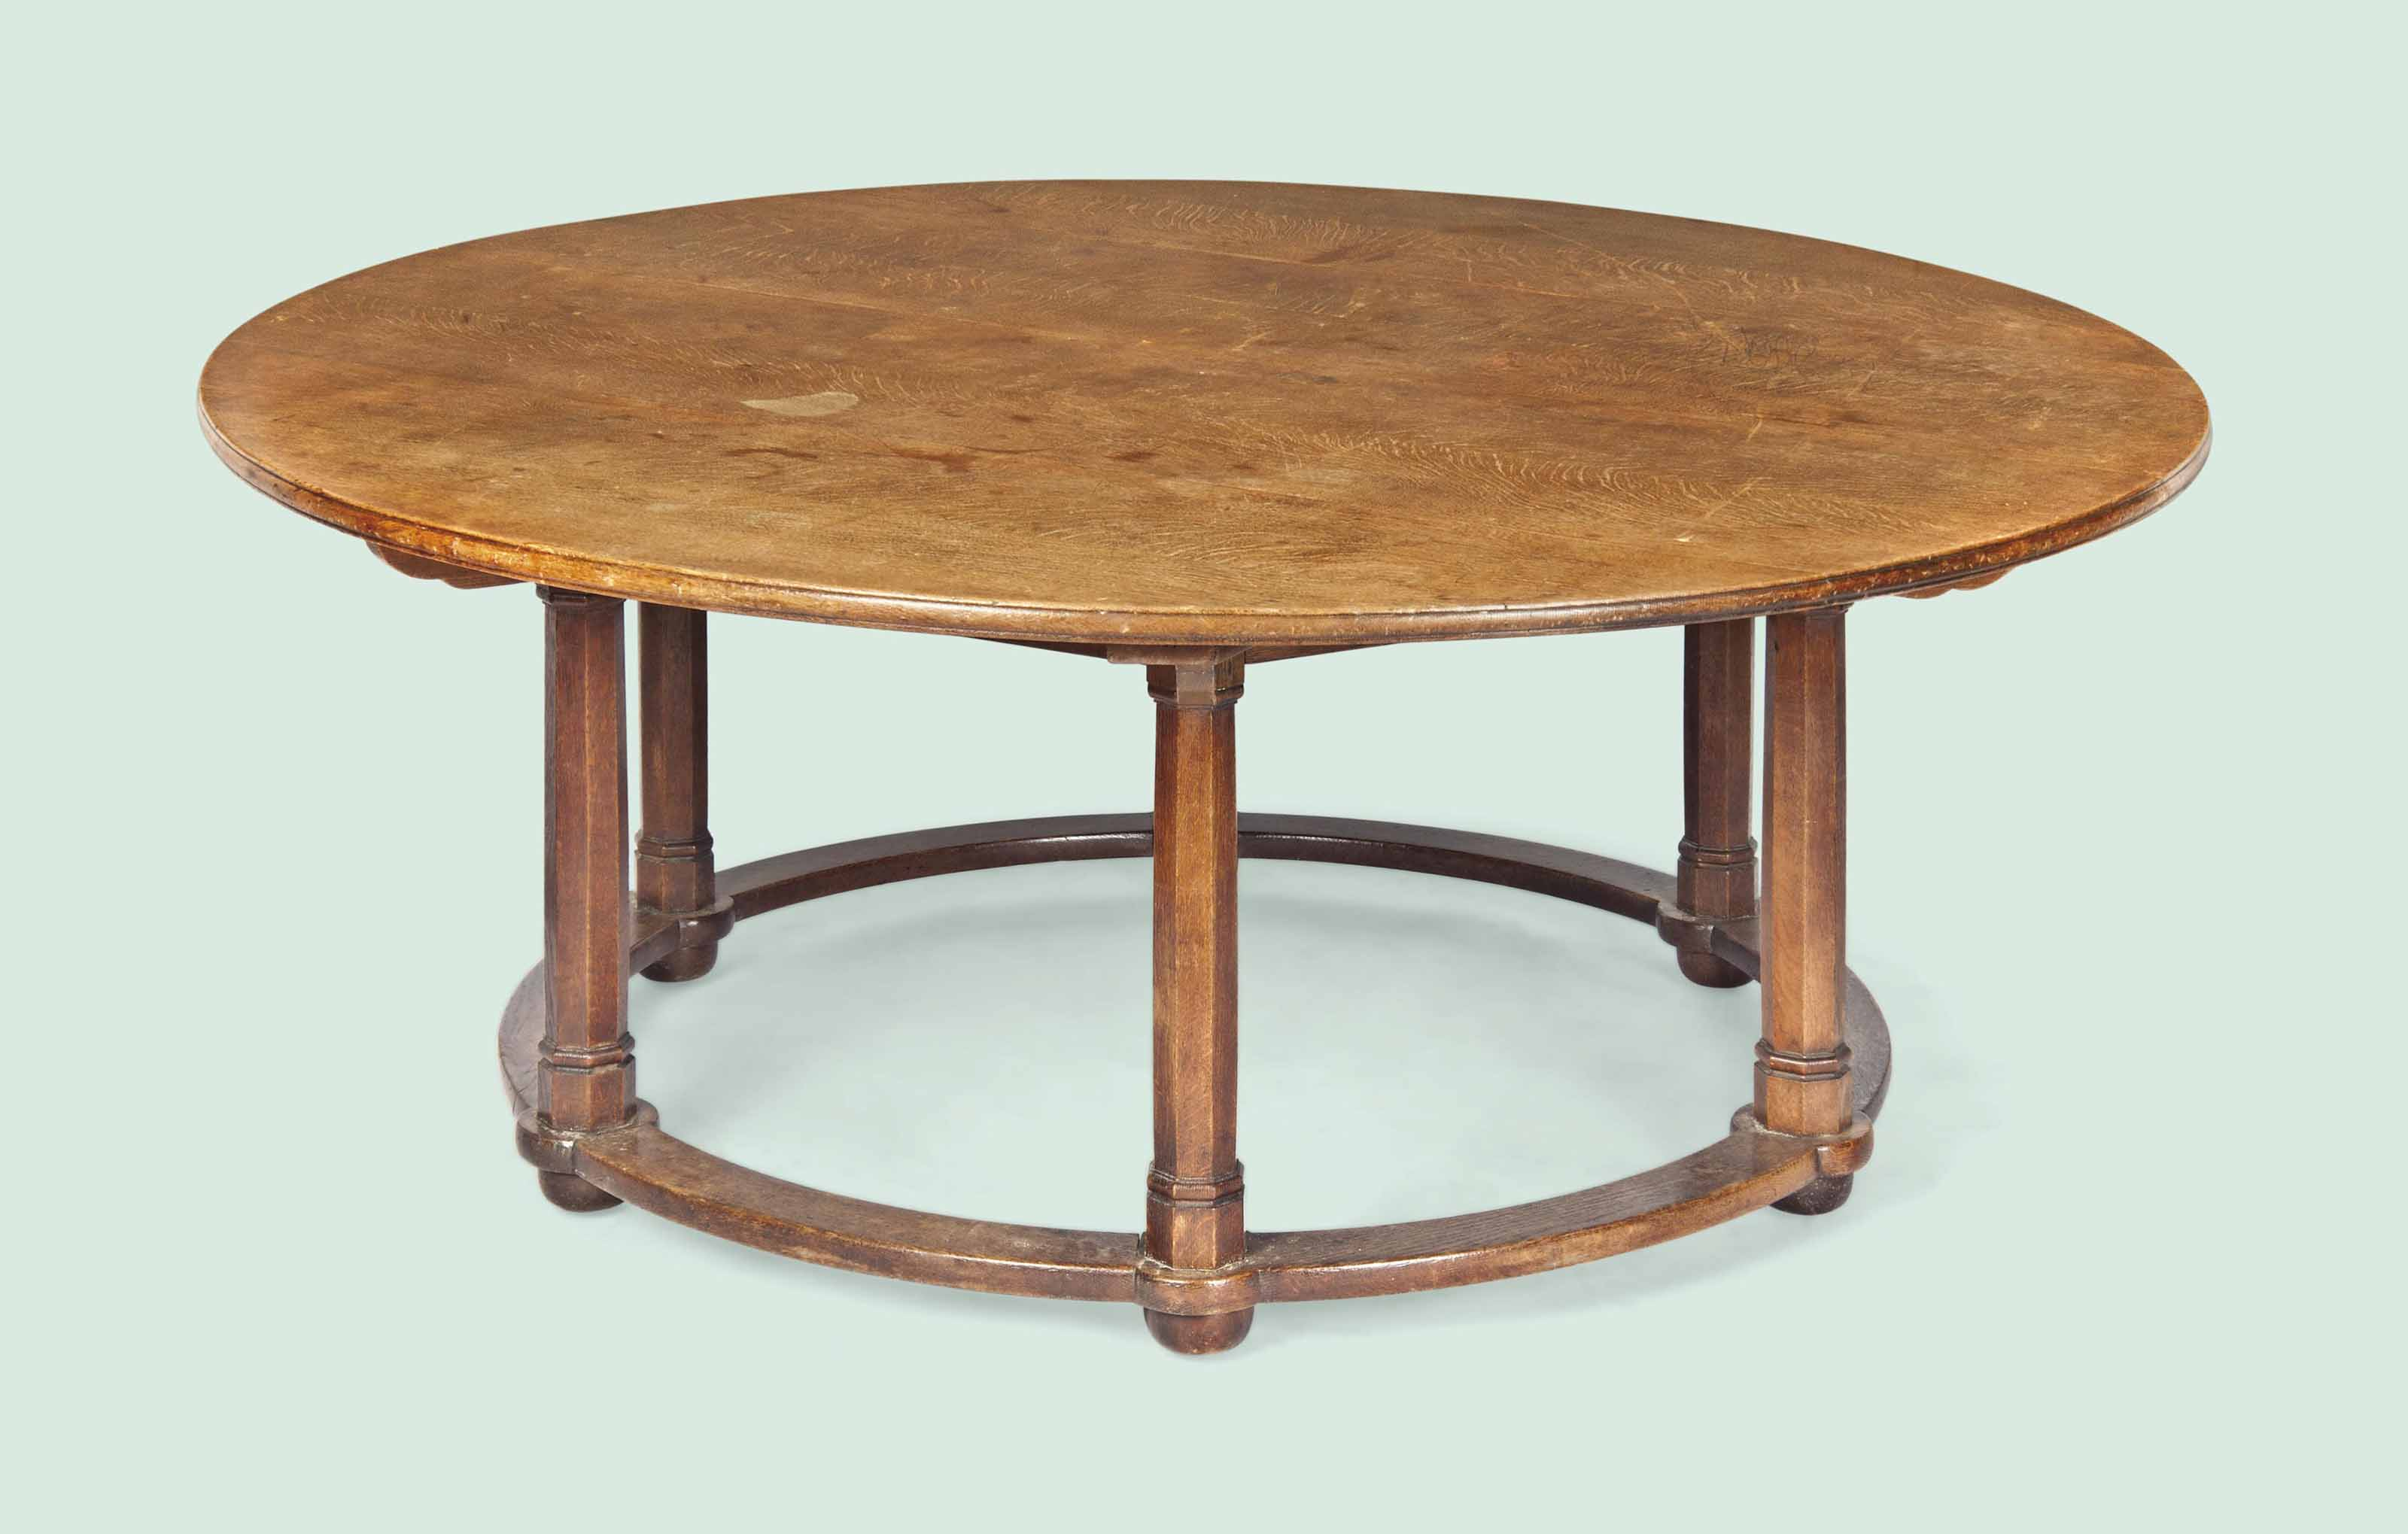 A LARGE ARTS AND CRAFTS OAK DINING TABLE